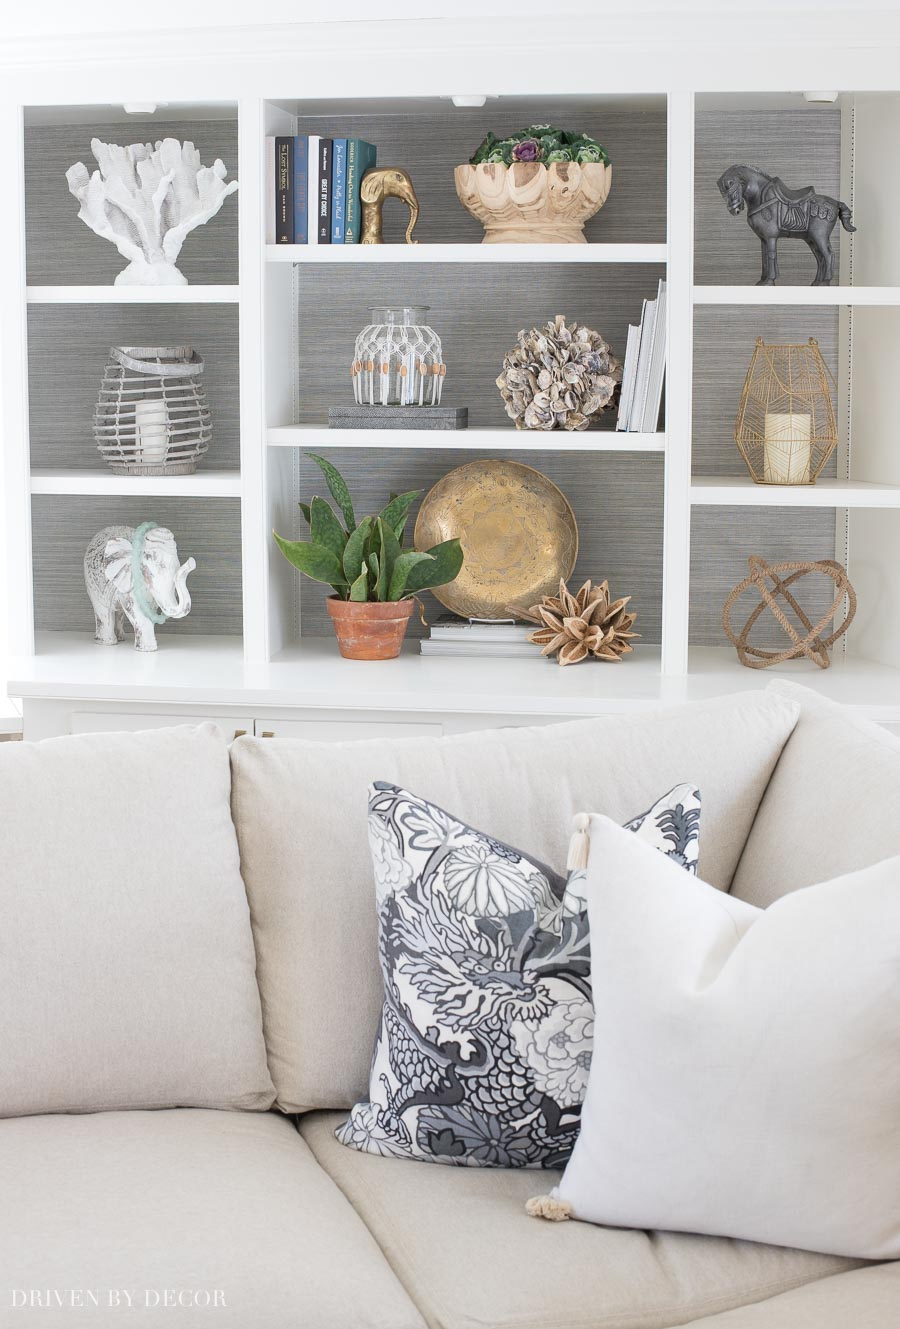 Loving these ideas for spring bookcase styling (those lanterns - love!)